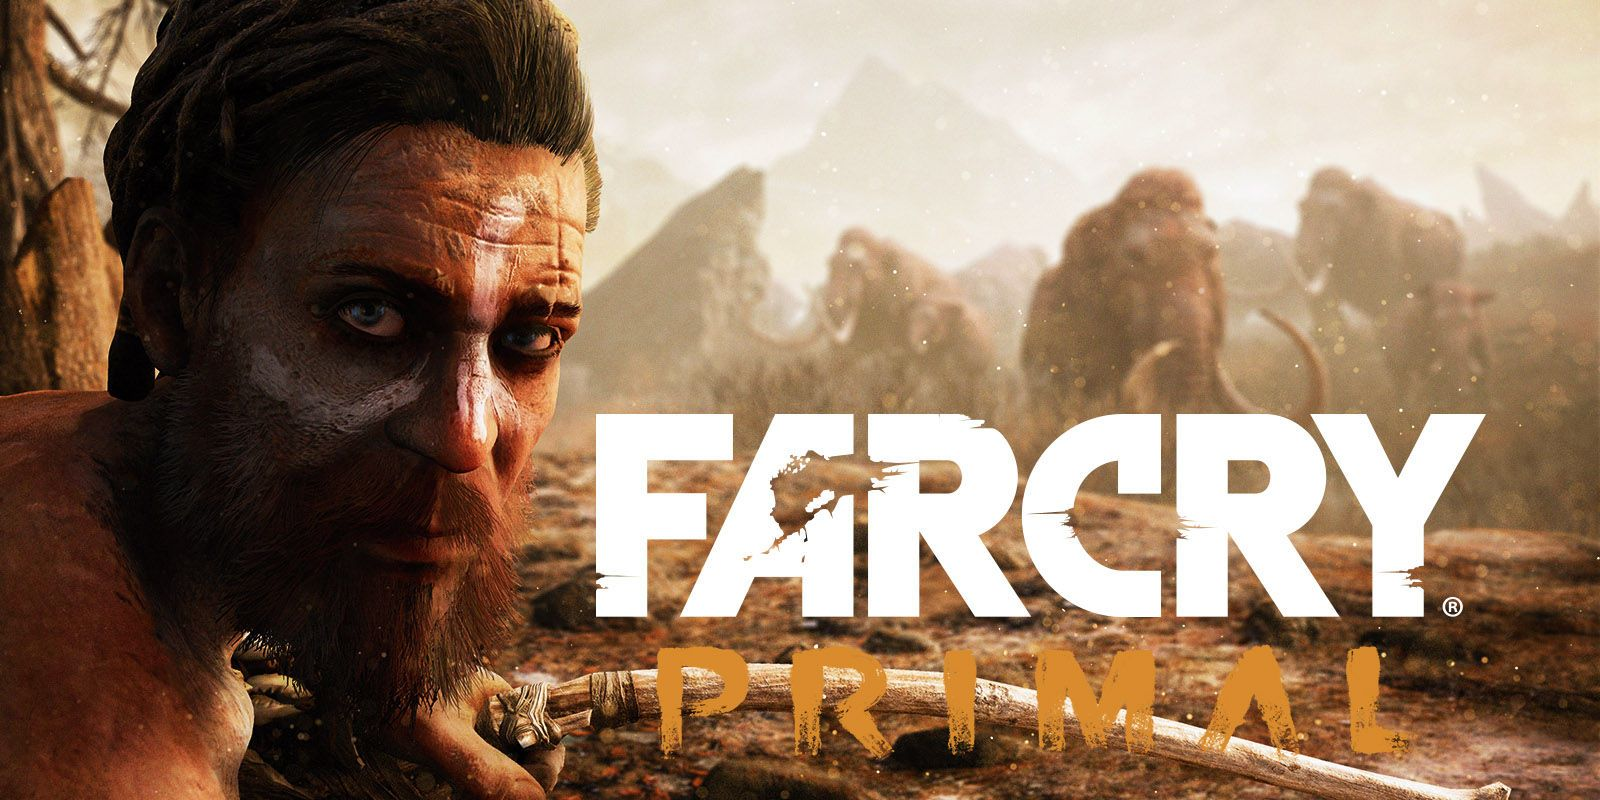 Far Cry Primal 101 Story Gameplay And World Explained In New